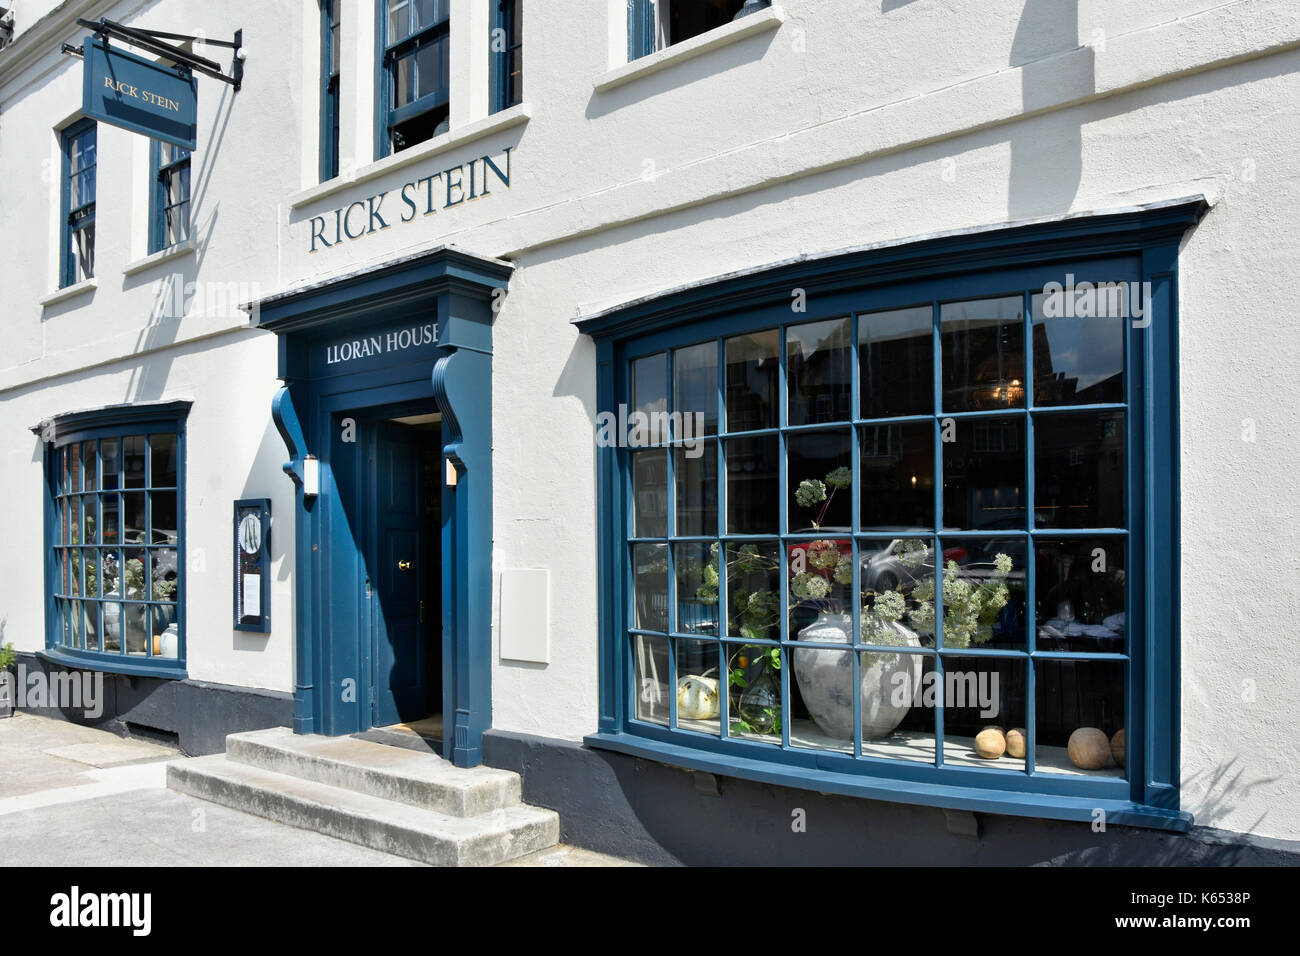 Front Elevation With Bay Window : Rick stein fish and seafood restaurant front elevation